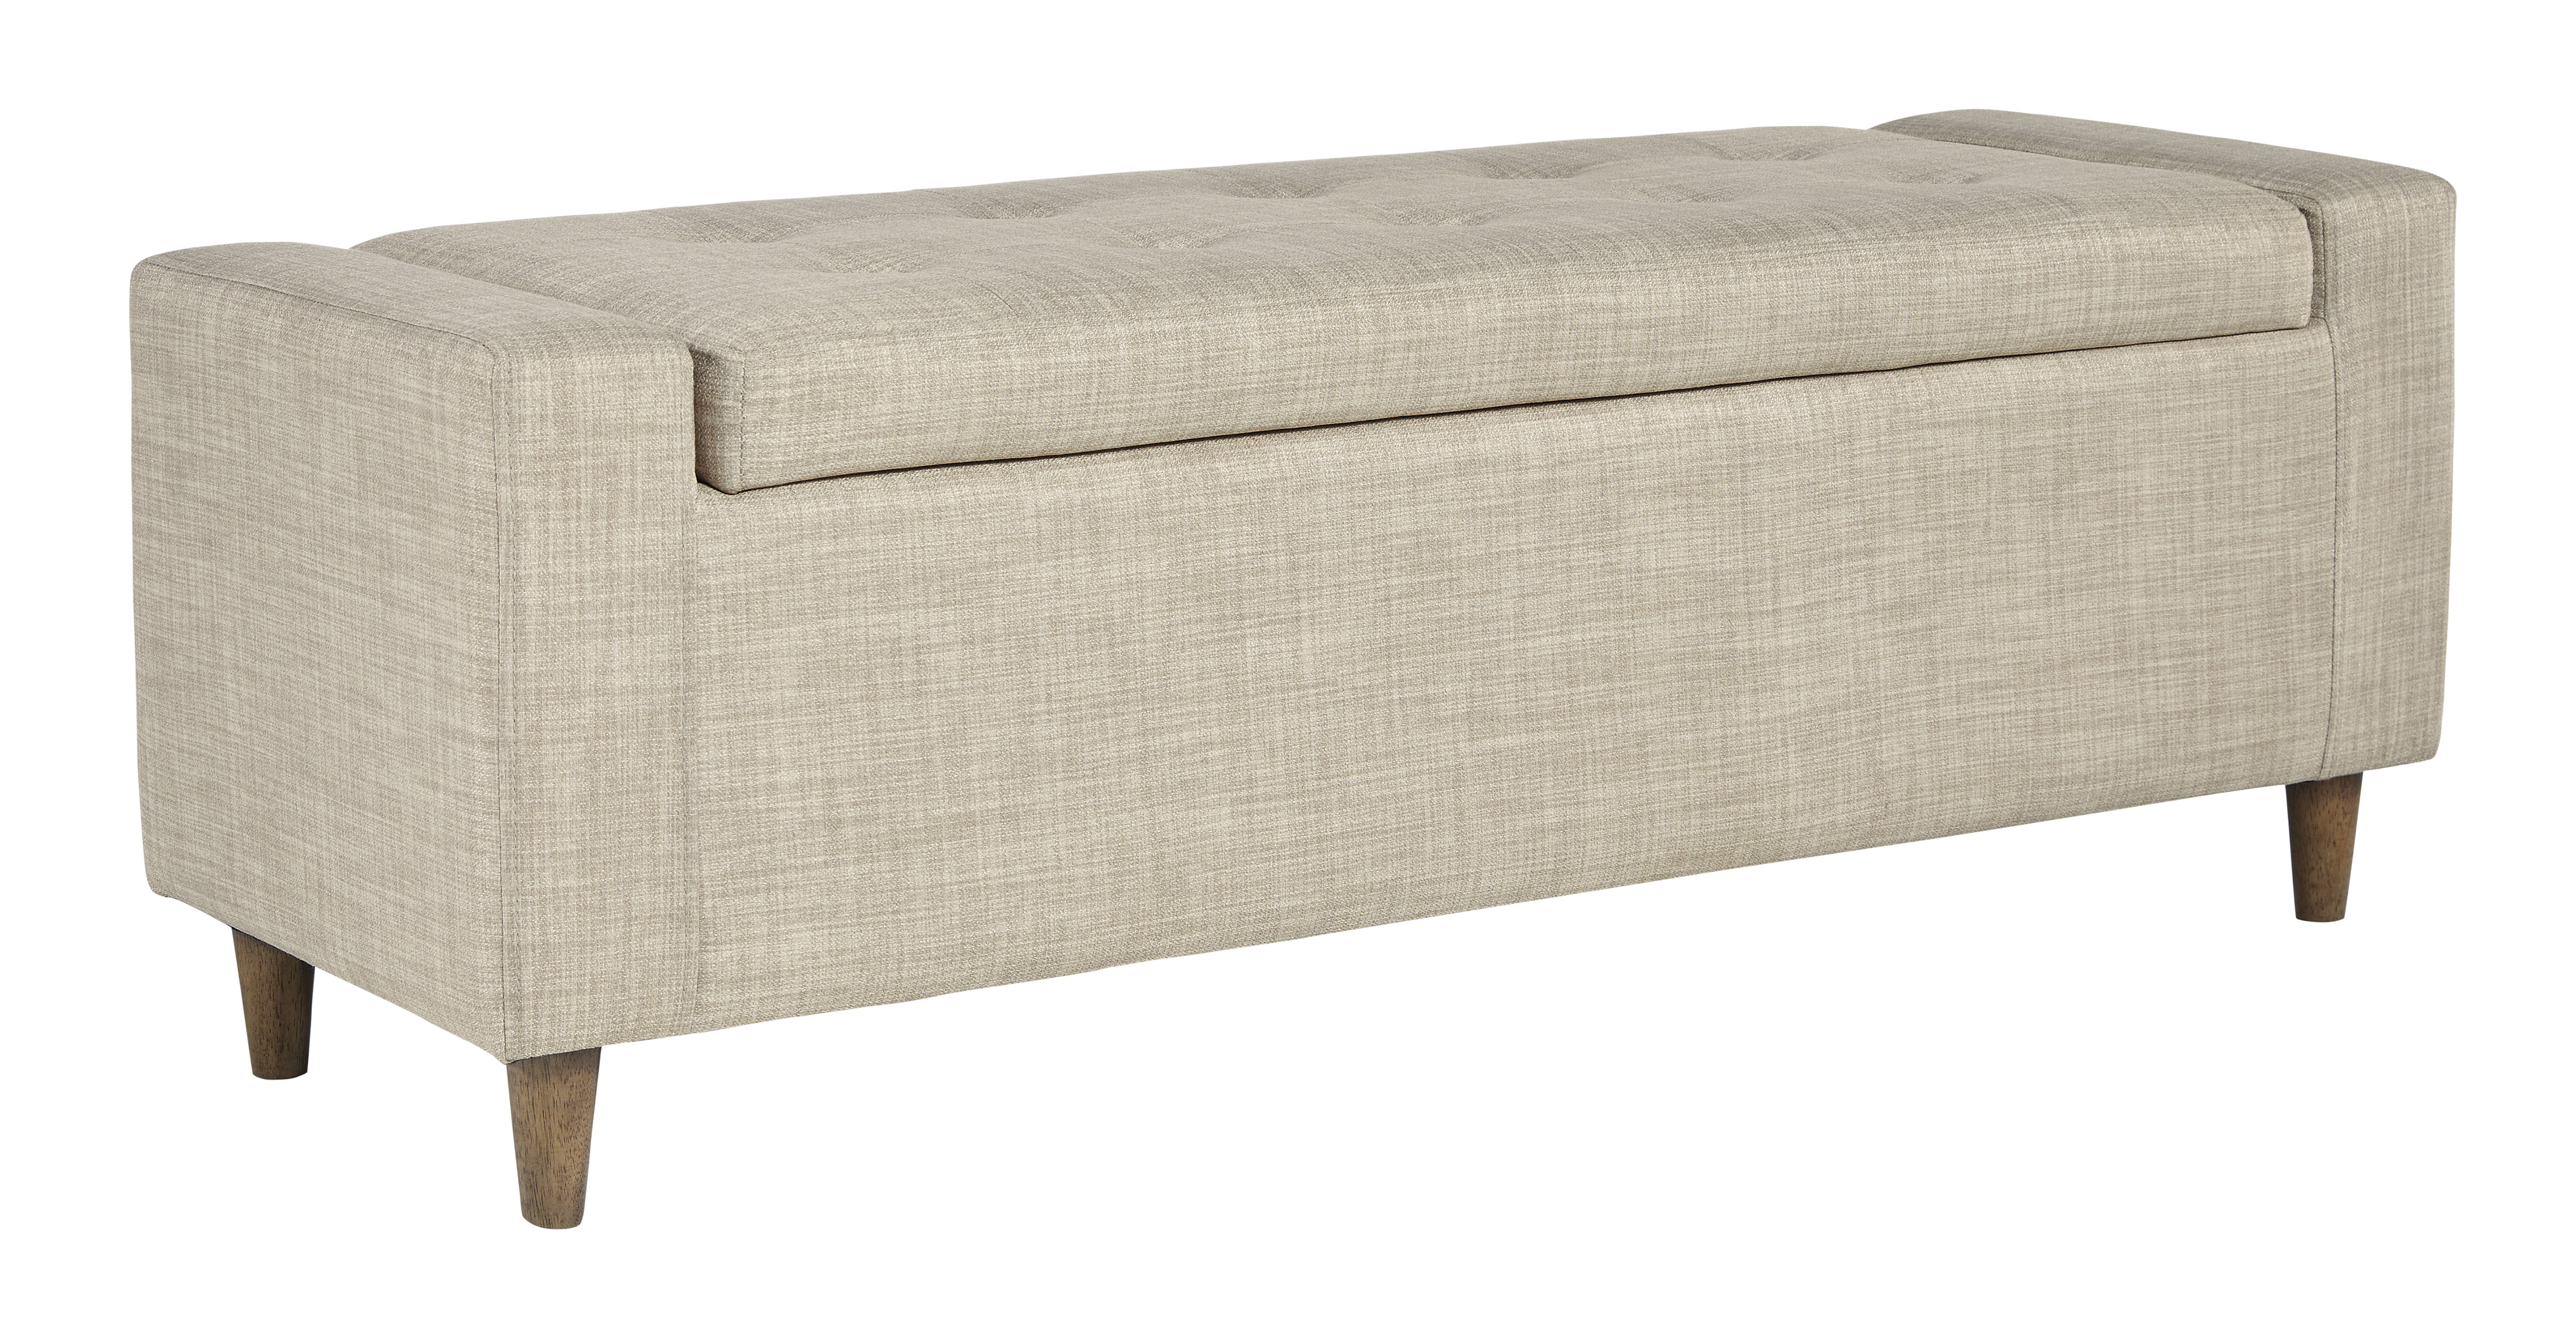 Winler Upholstered Accent Bench by Signature Design by Ashley at Catalog Outlet